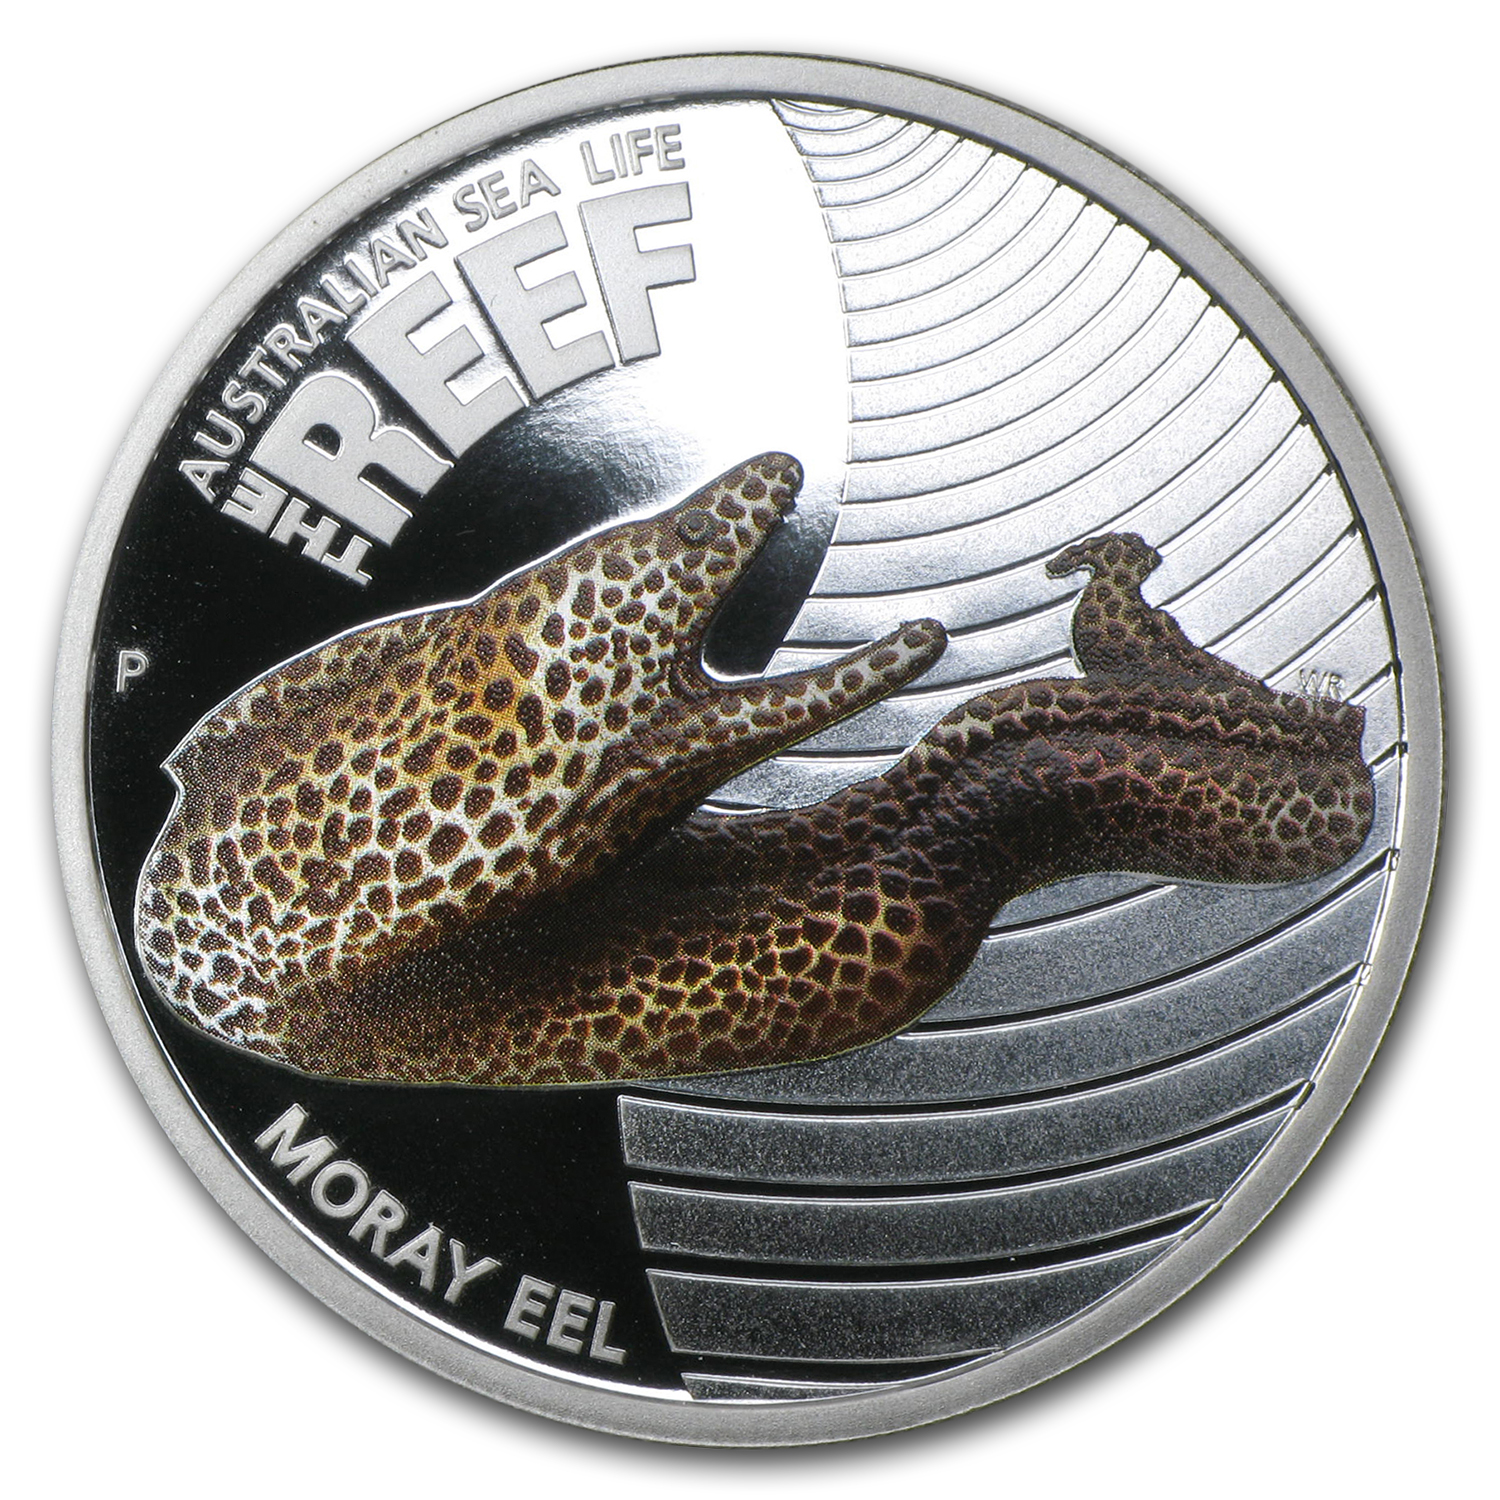 2010 1/2 oz Silver Australian Moray Eel Proof